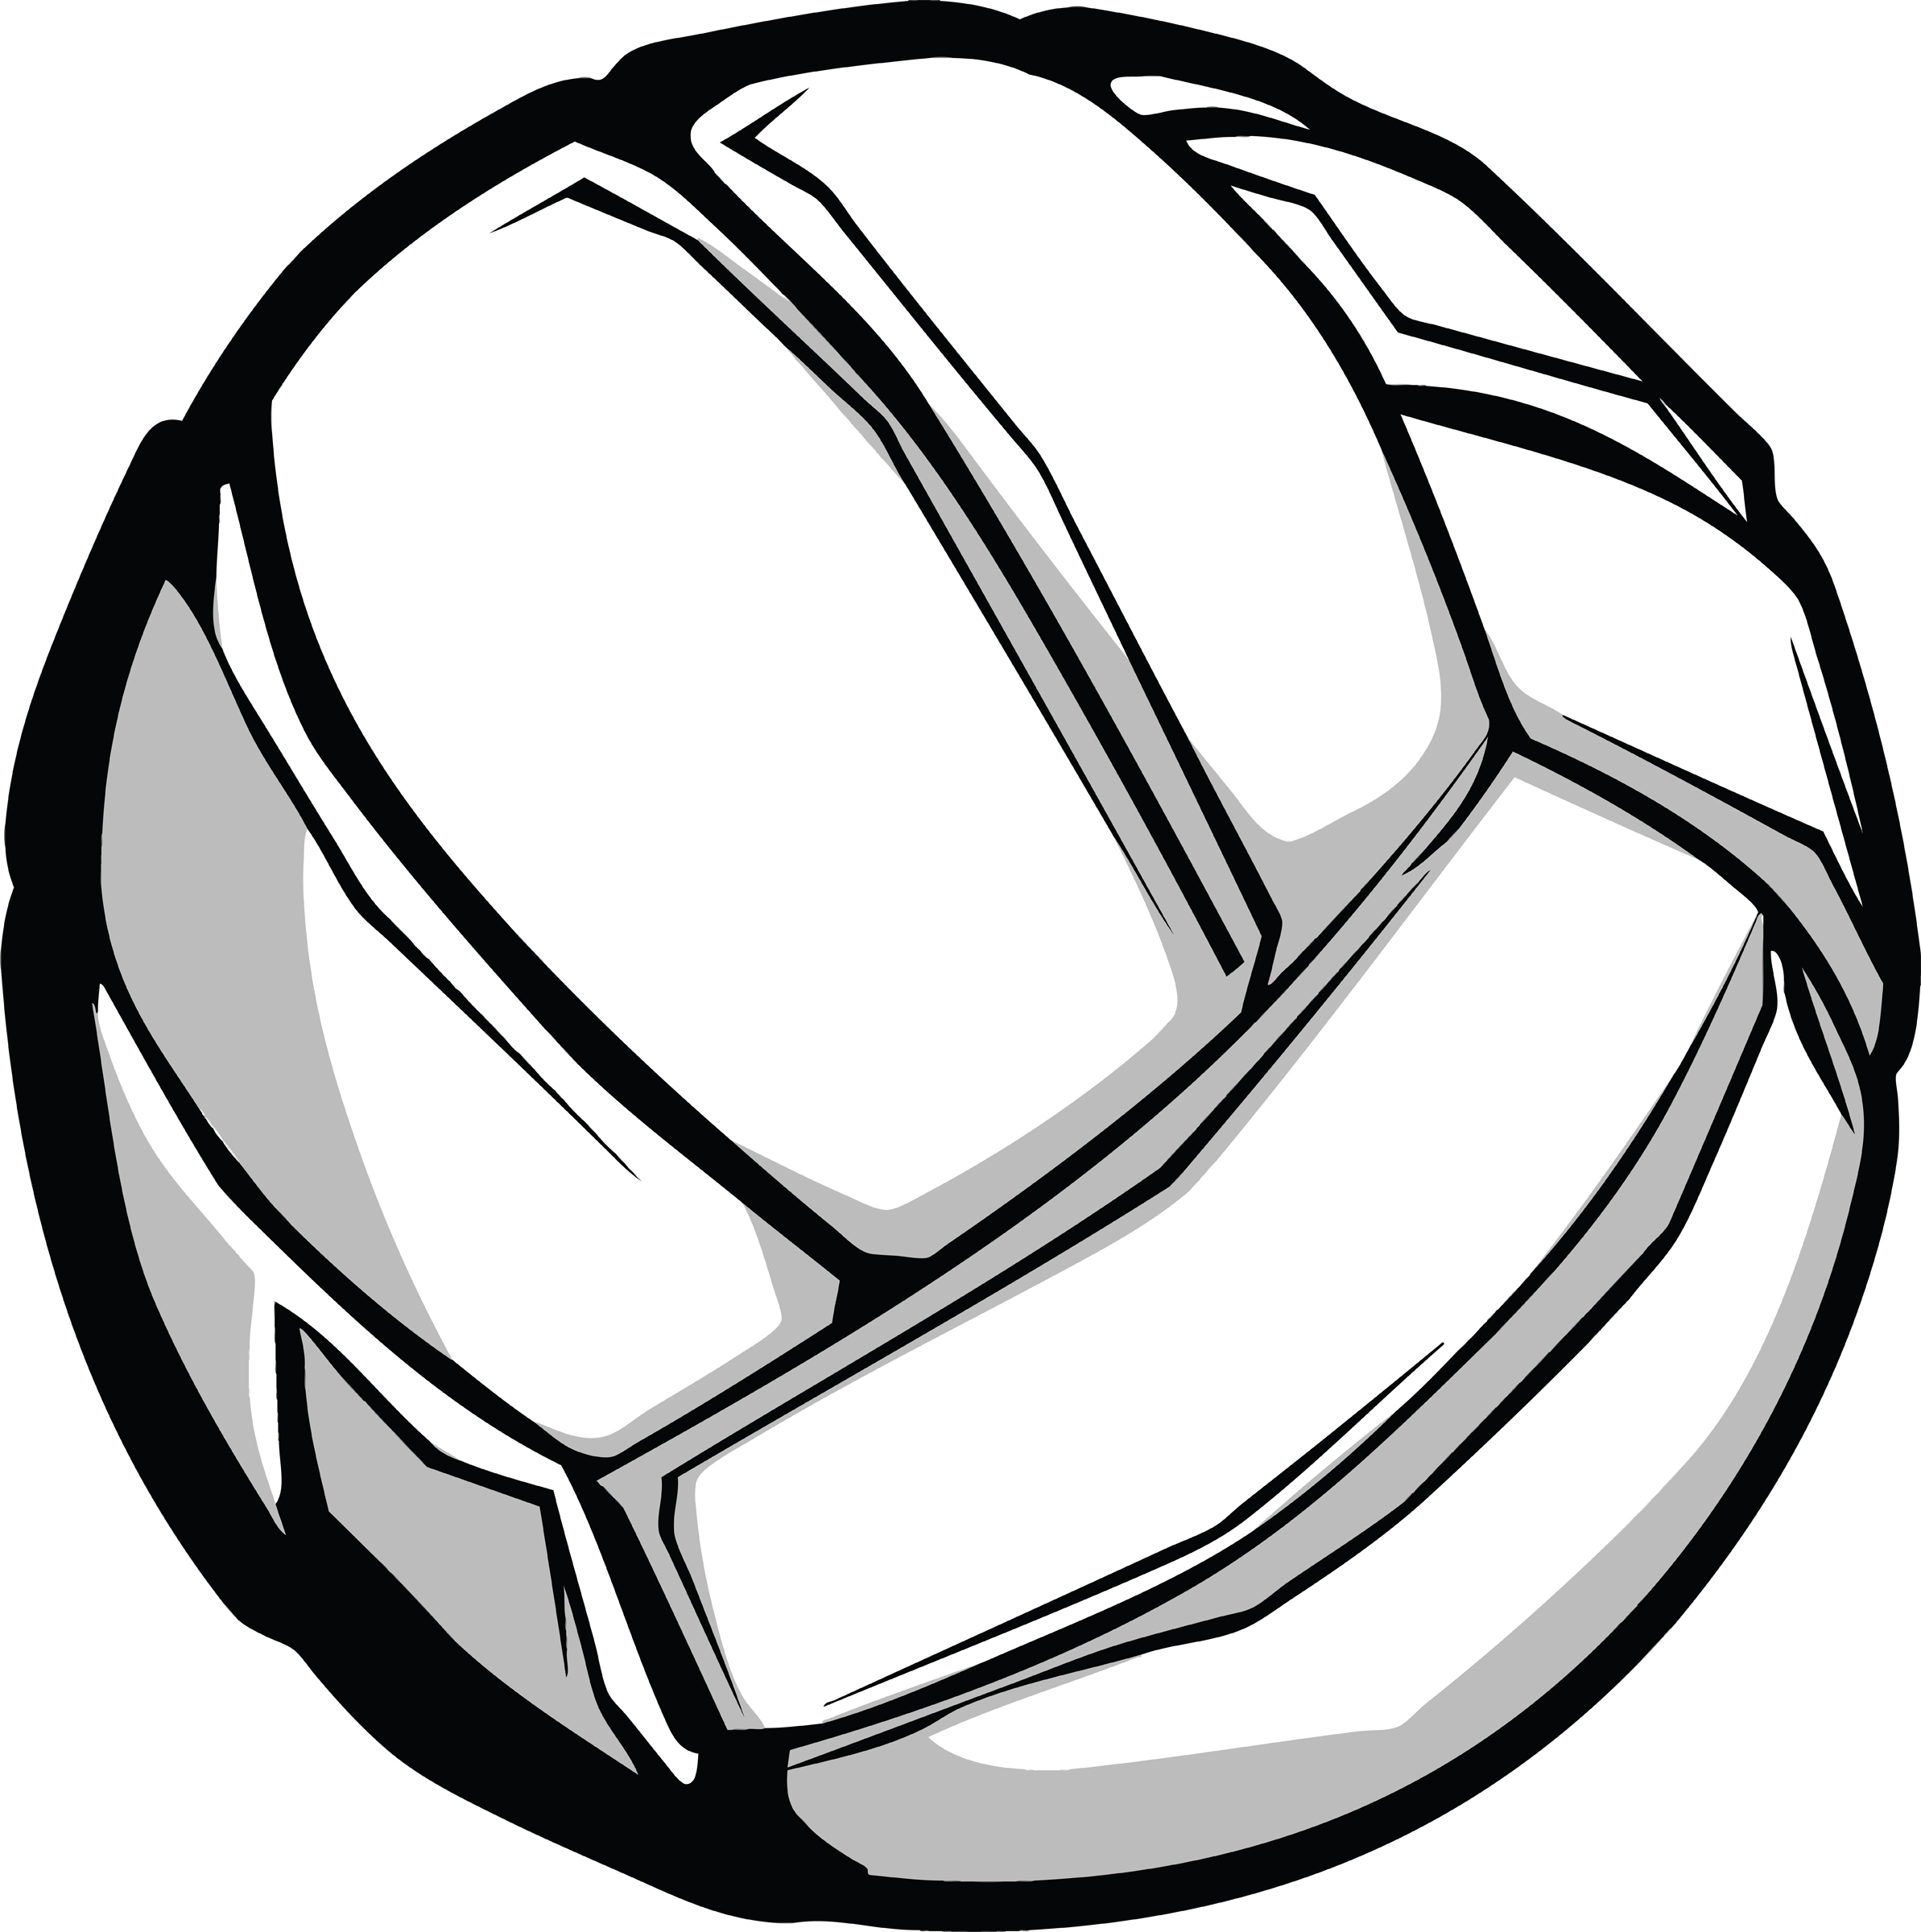 Volleyball Jpeg | Free download best Volleyball Jpeg on ...